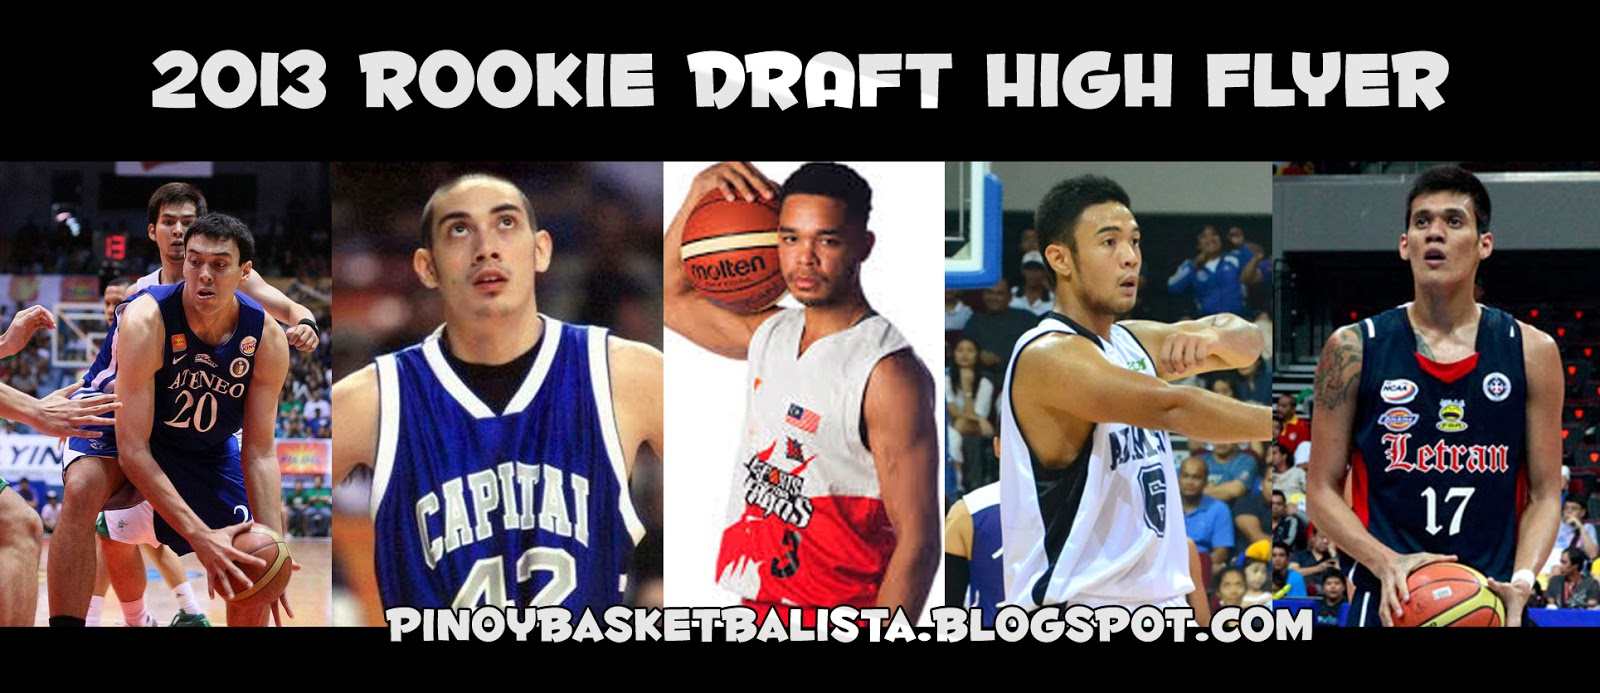 rookie-draft-high-jumper-dunker-pba-draft-2013-pba-pinoy-basketbalista